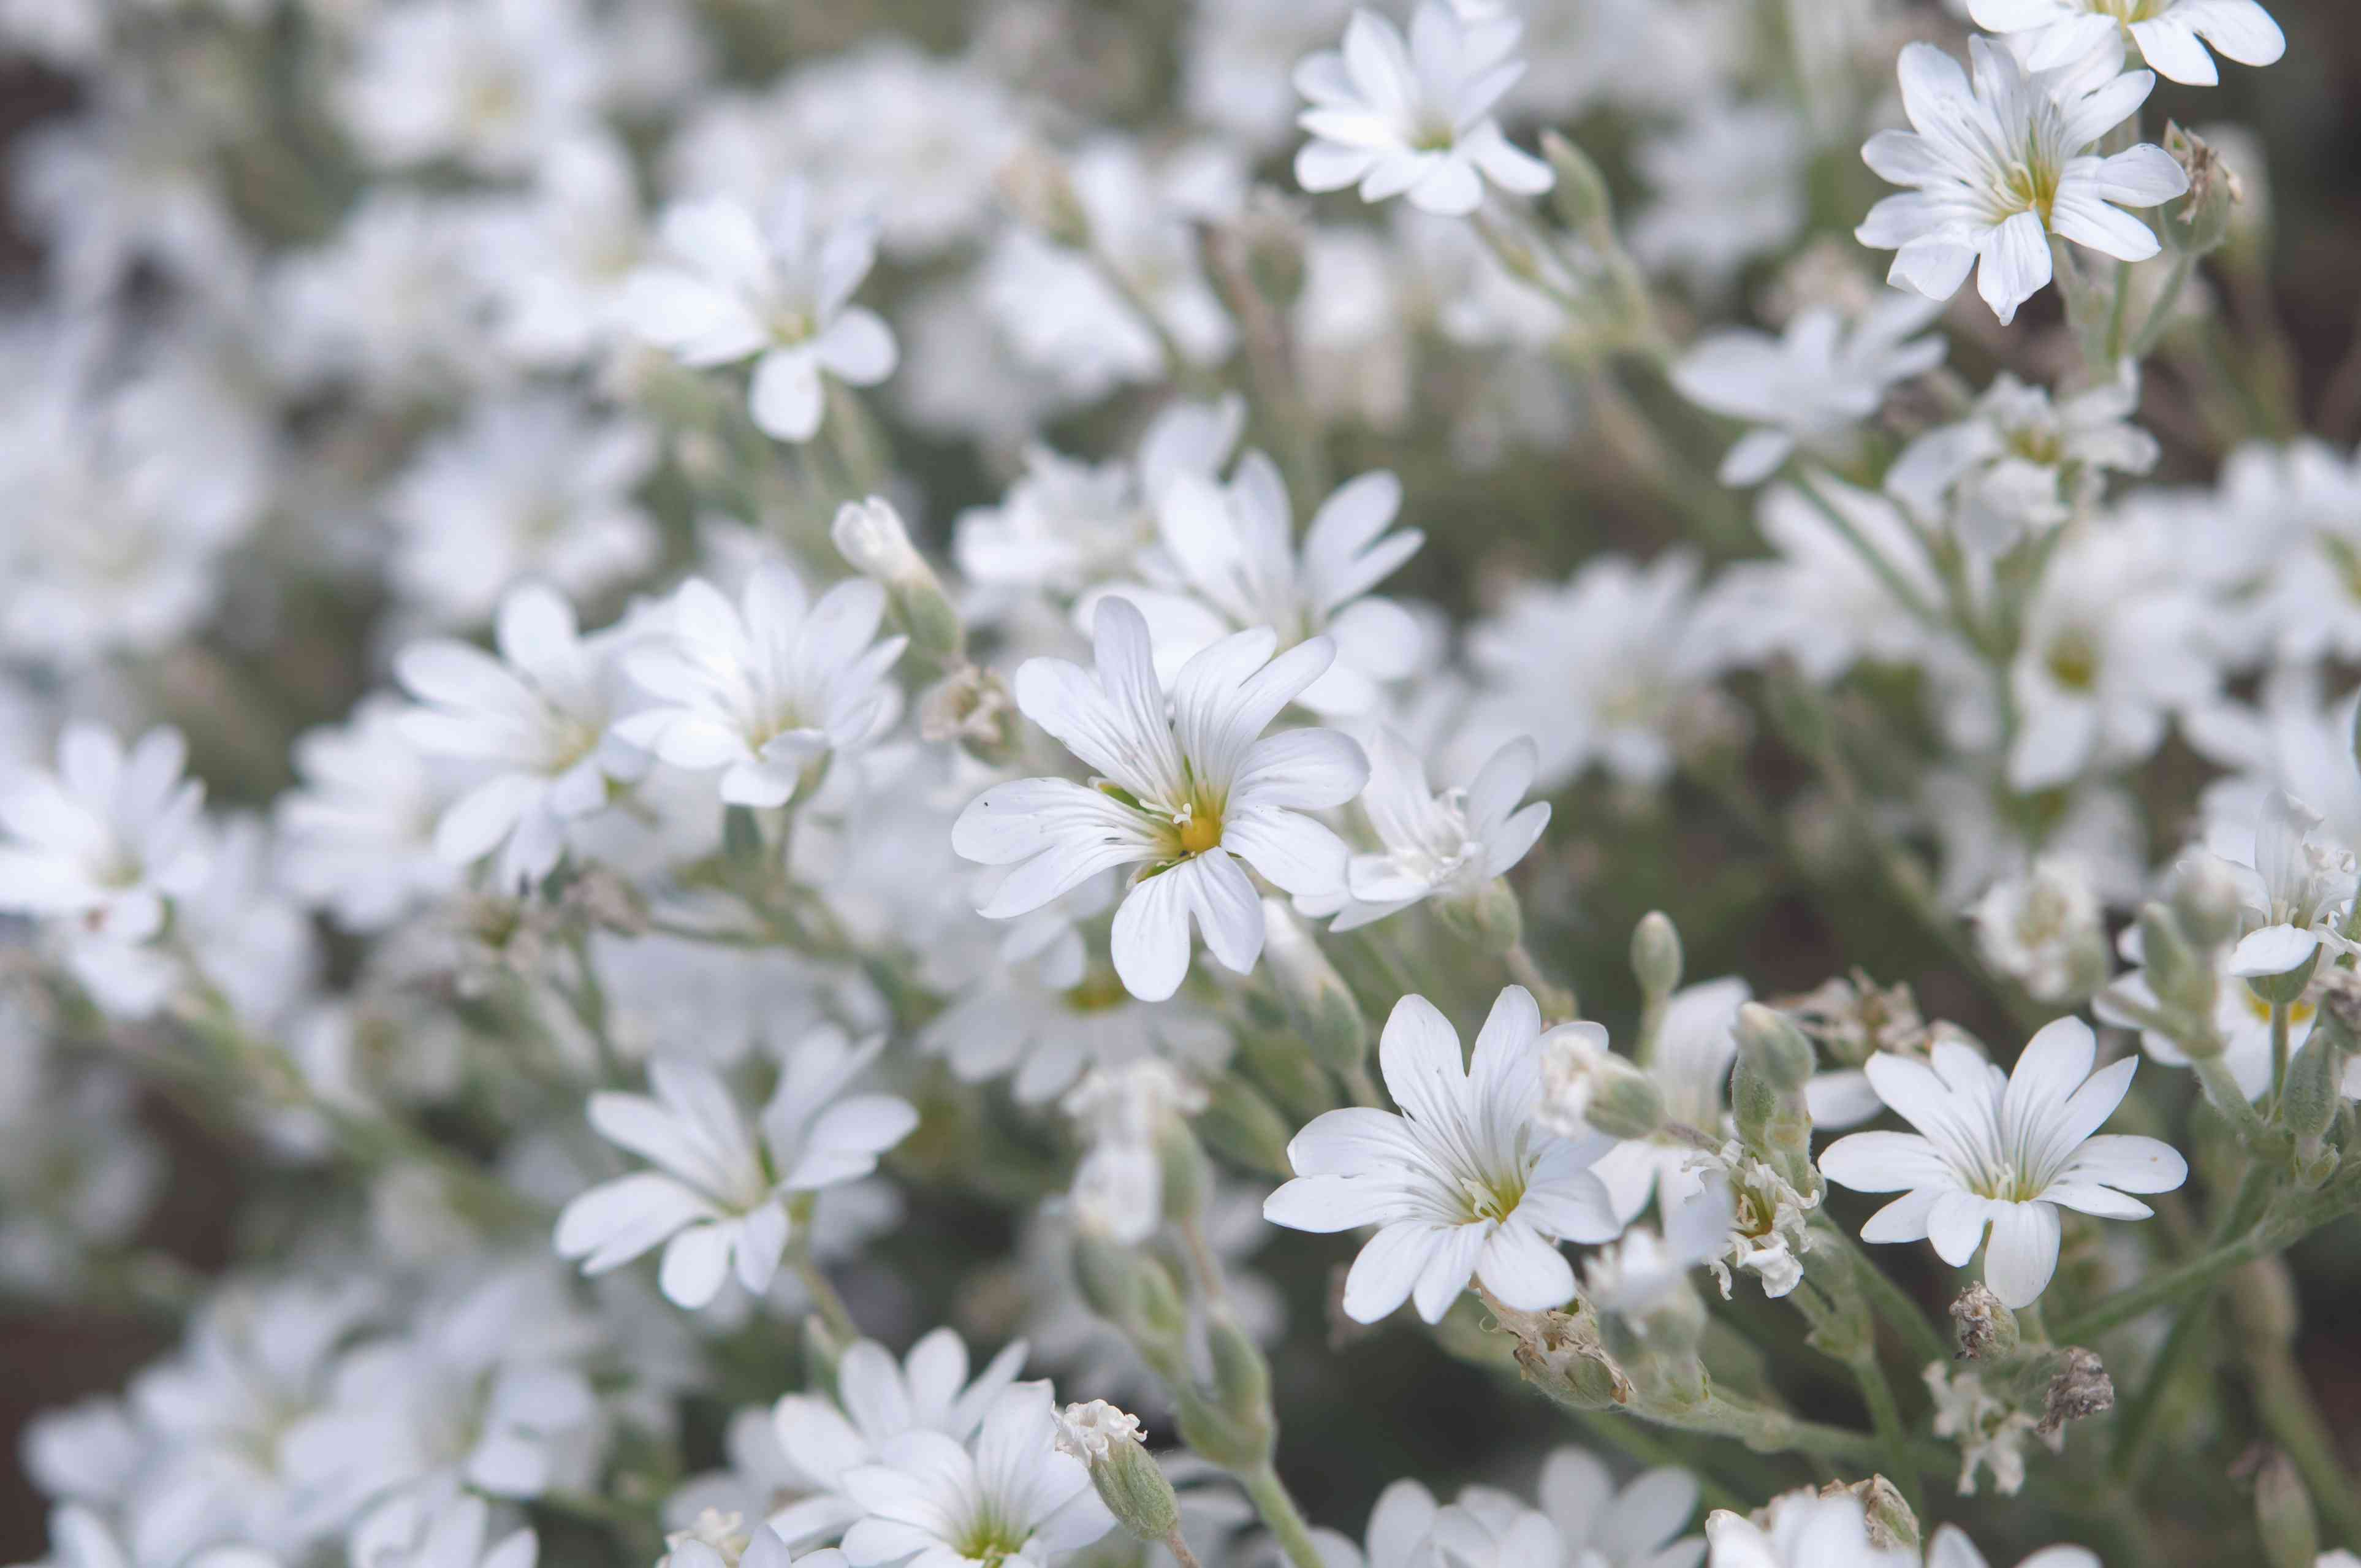 Snow in summer plant with small white flowers closeup